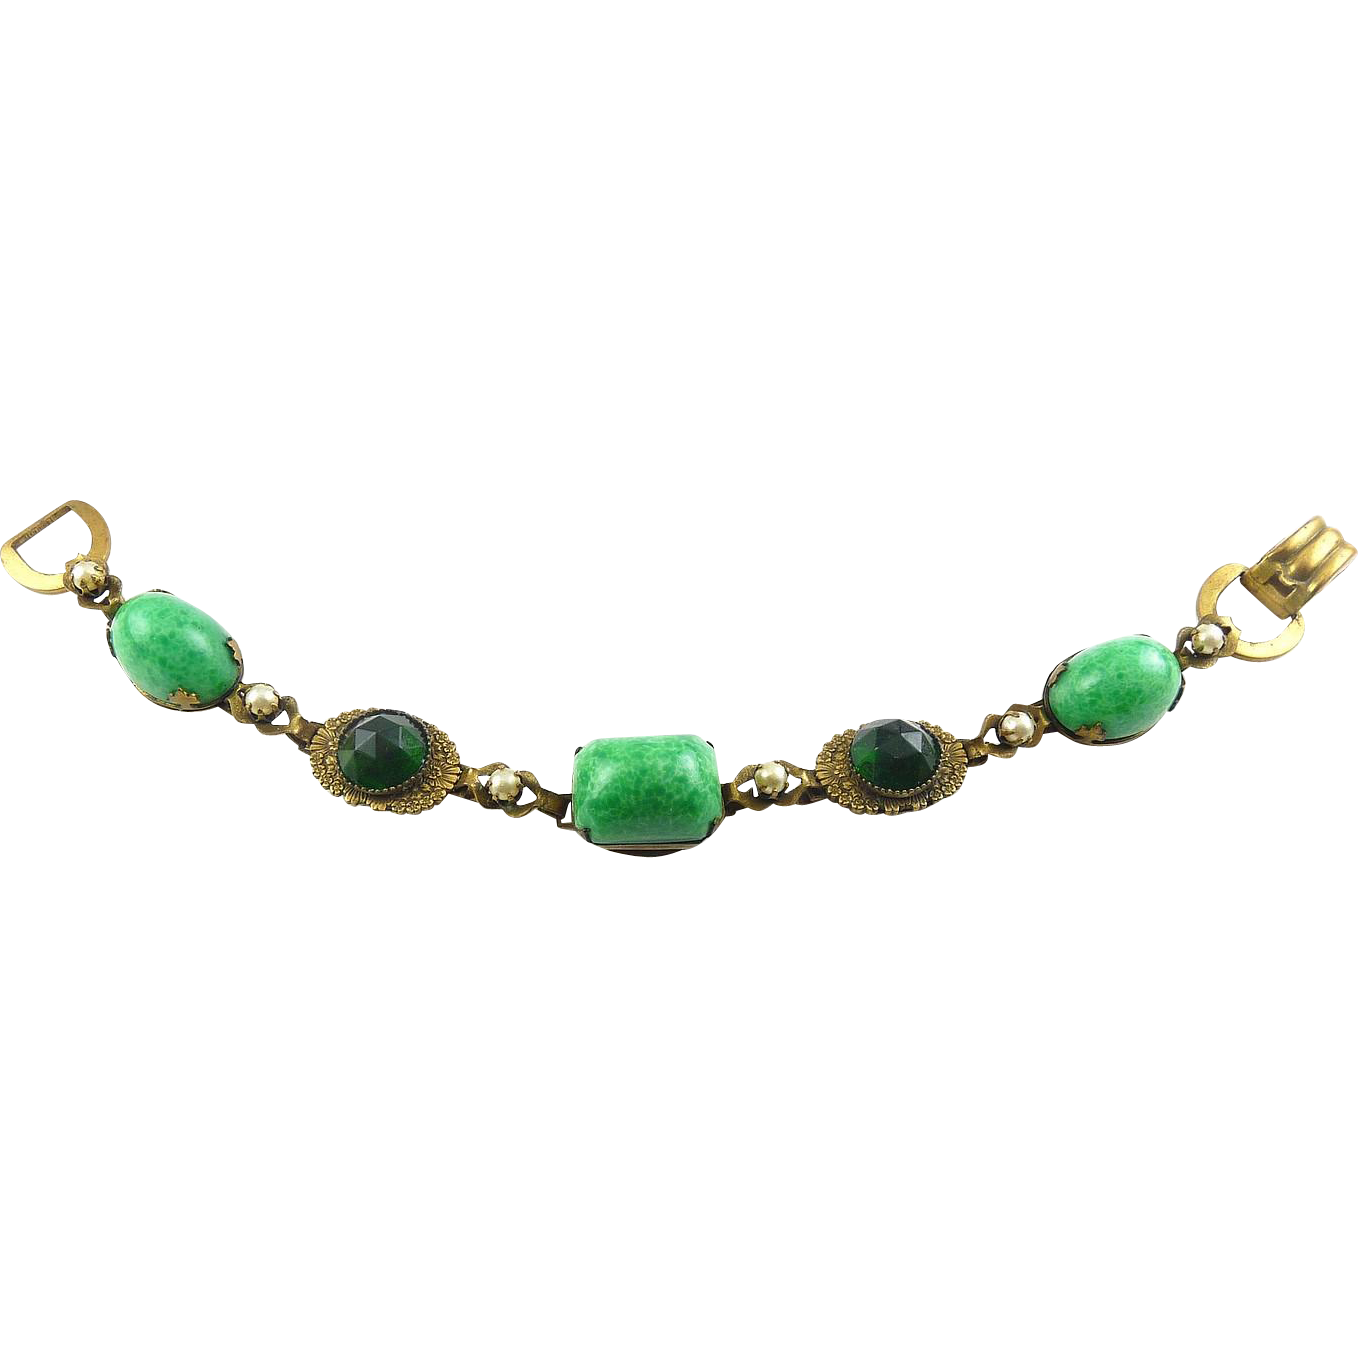 1930's Brass Bracelet with Big Jade Peking Glass & Emerald Rhinestone Rose-Cut Stones & Faux Pearls